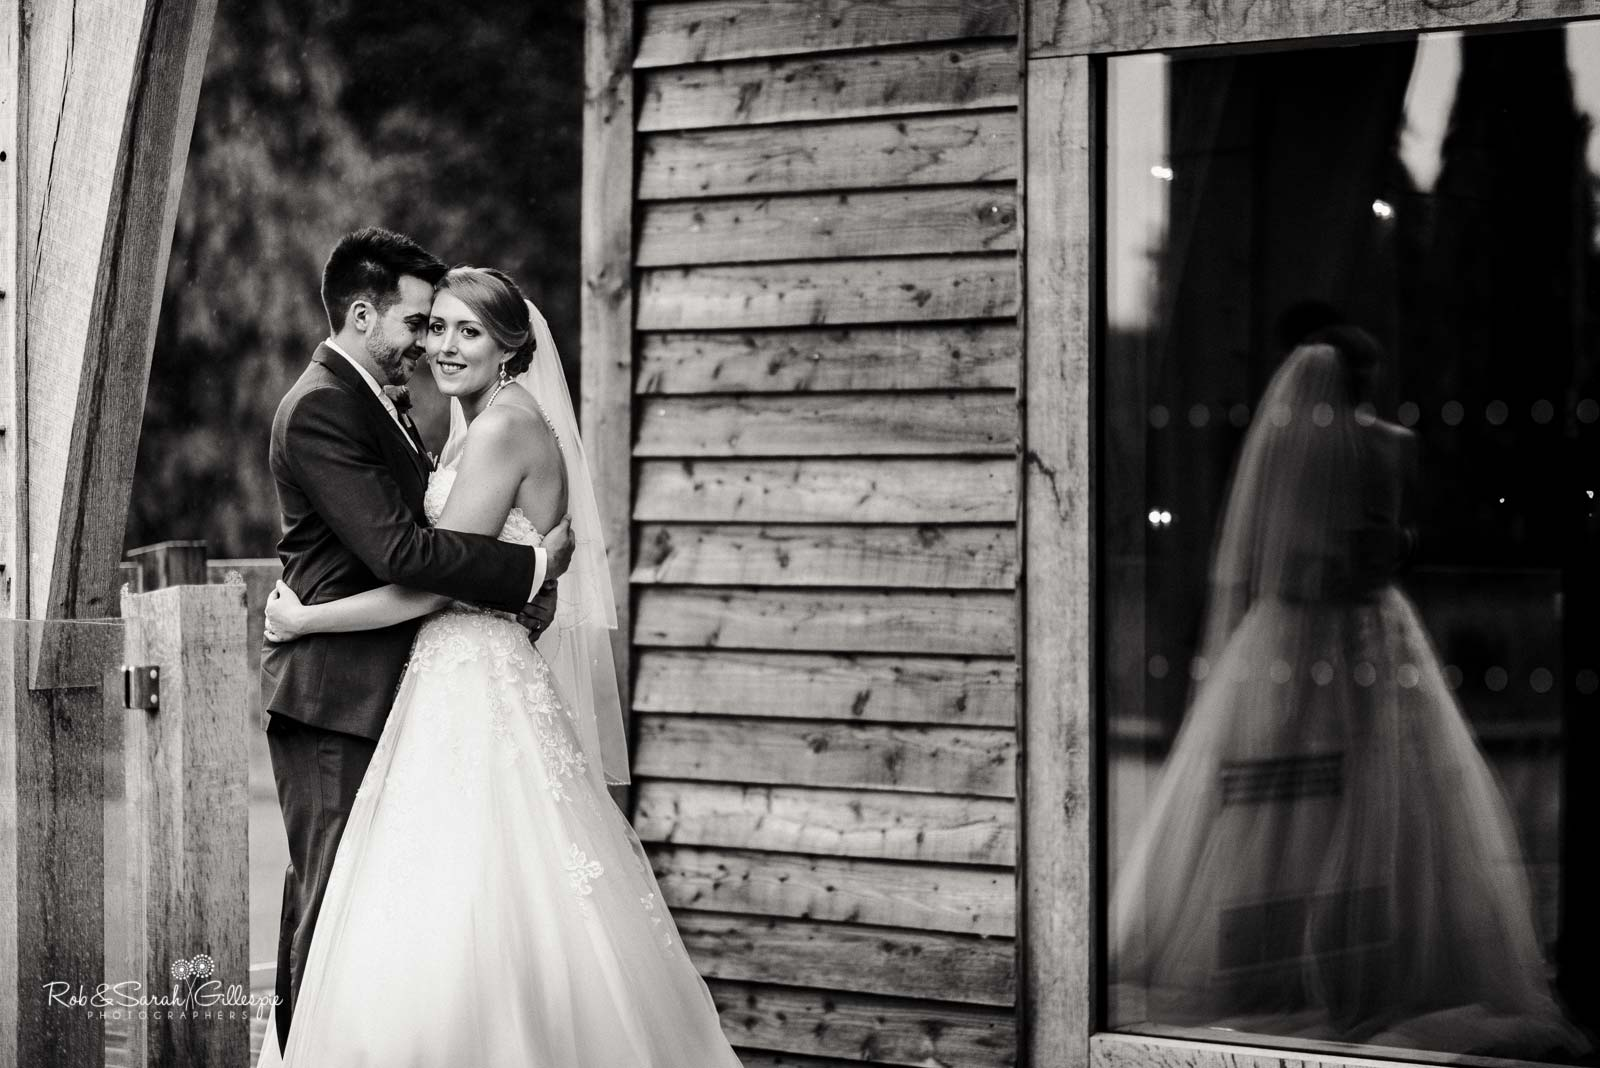 Relaxed couple photos at The Mill Barns wedding venue